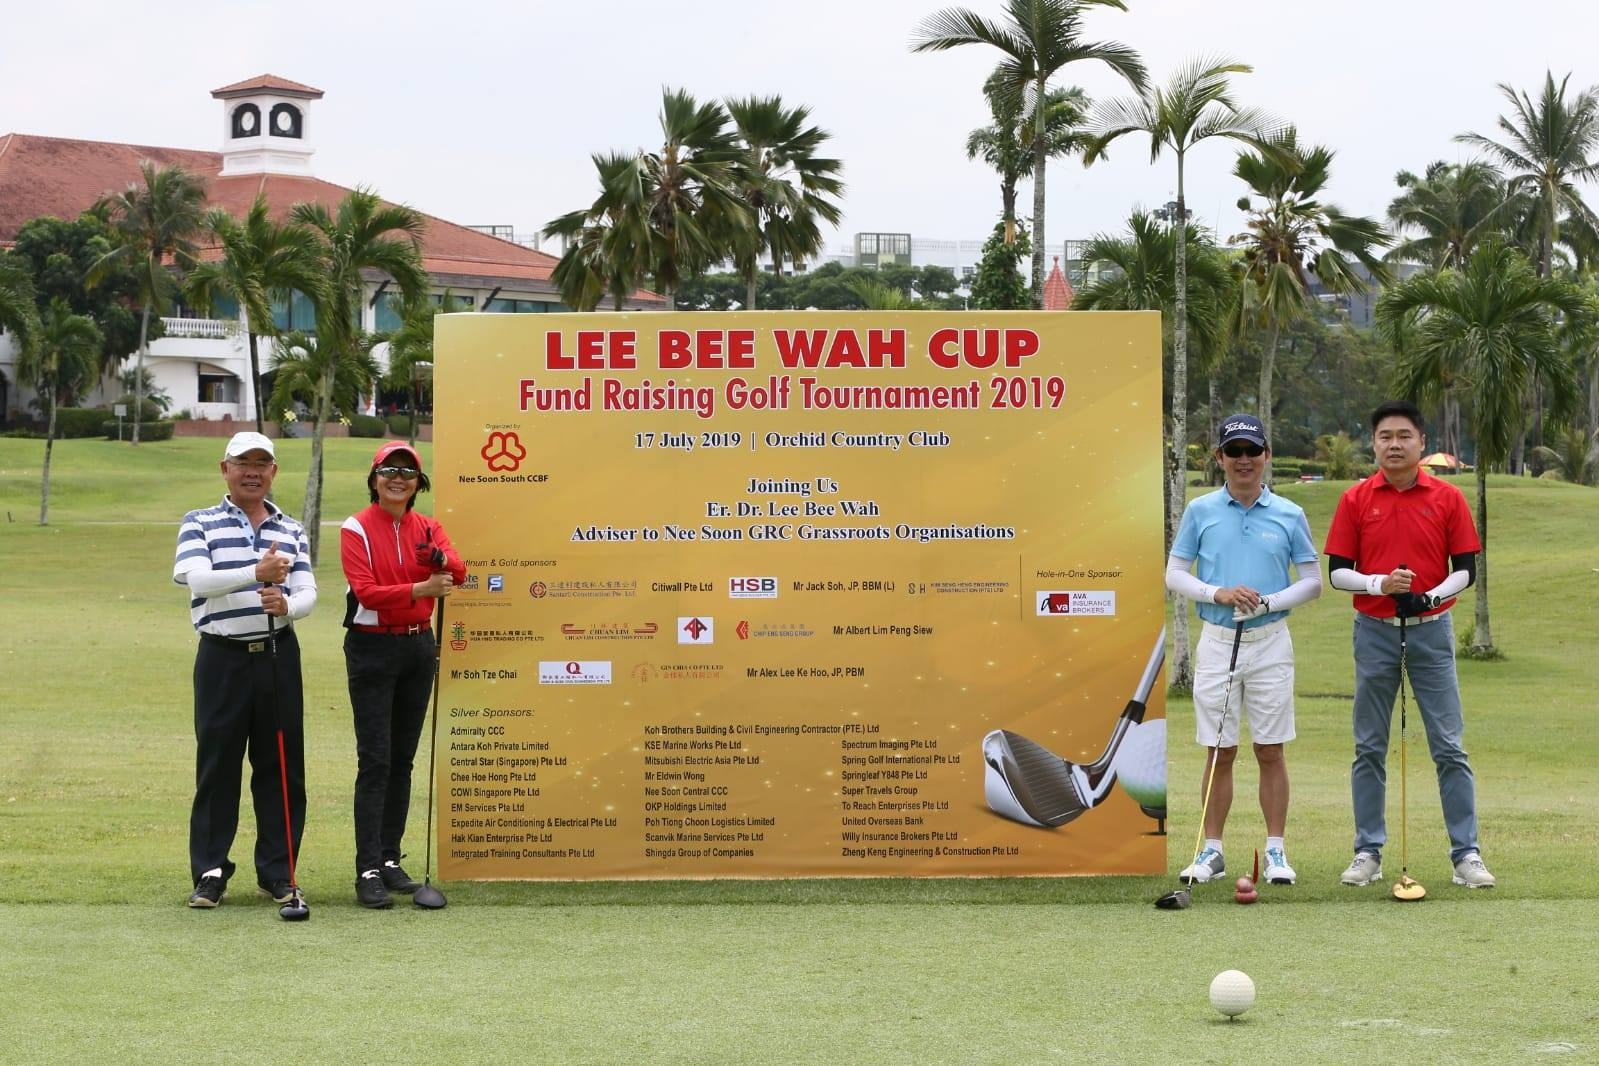 Santarli participates in Lee Bee Wah Cup FundRaising Golf Tournament, chaired by our Director Mr Chan Thiam Seng